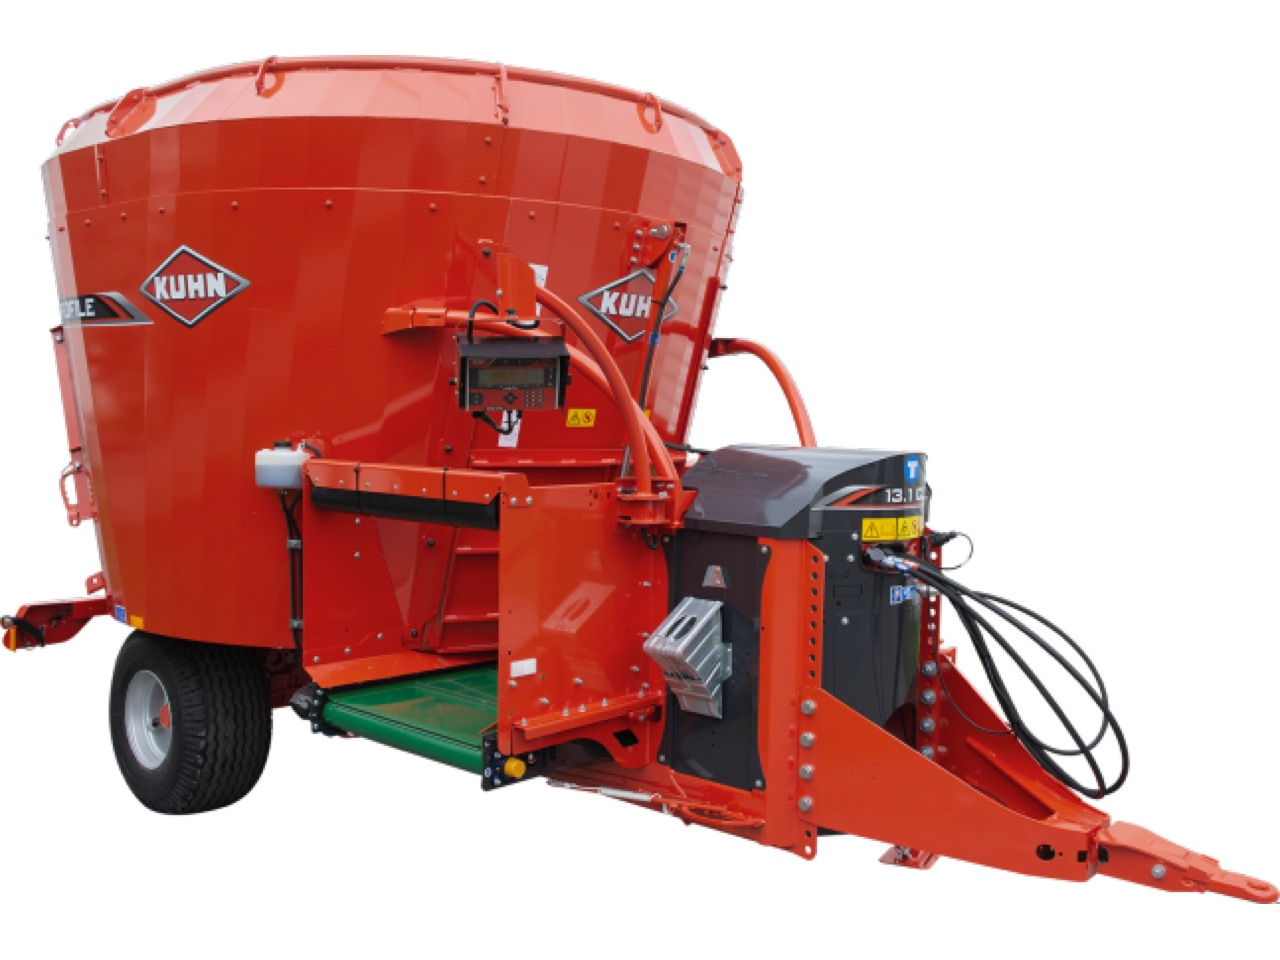 Kuhn Profile 1 CL Profile 14.1 CL